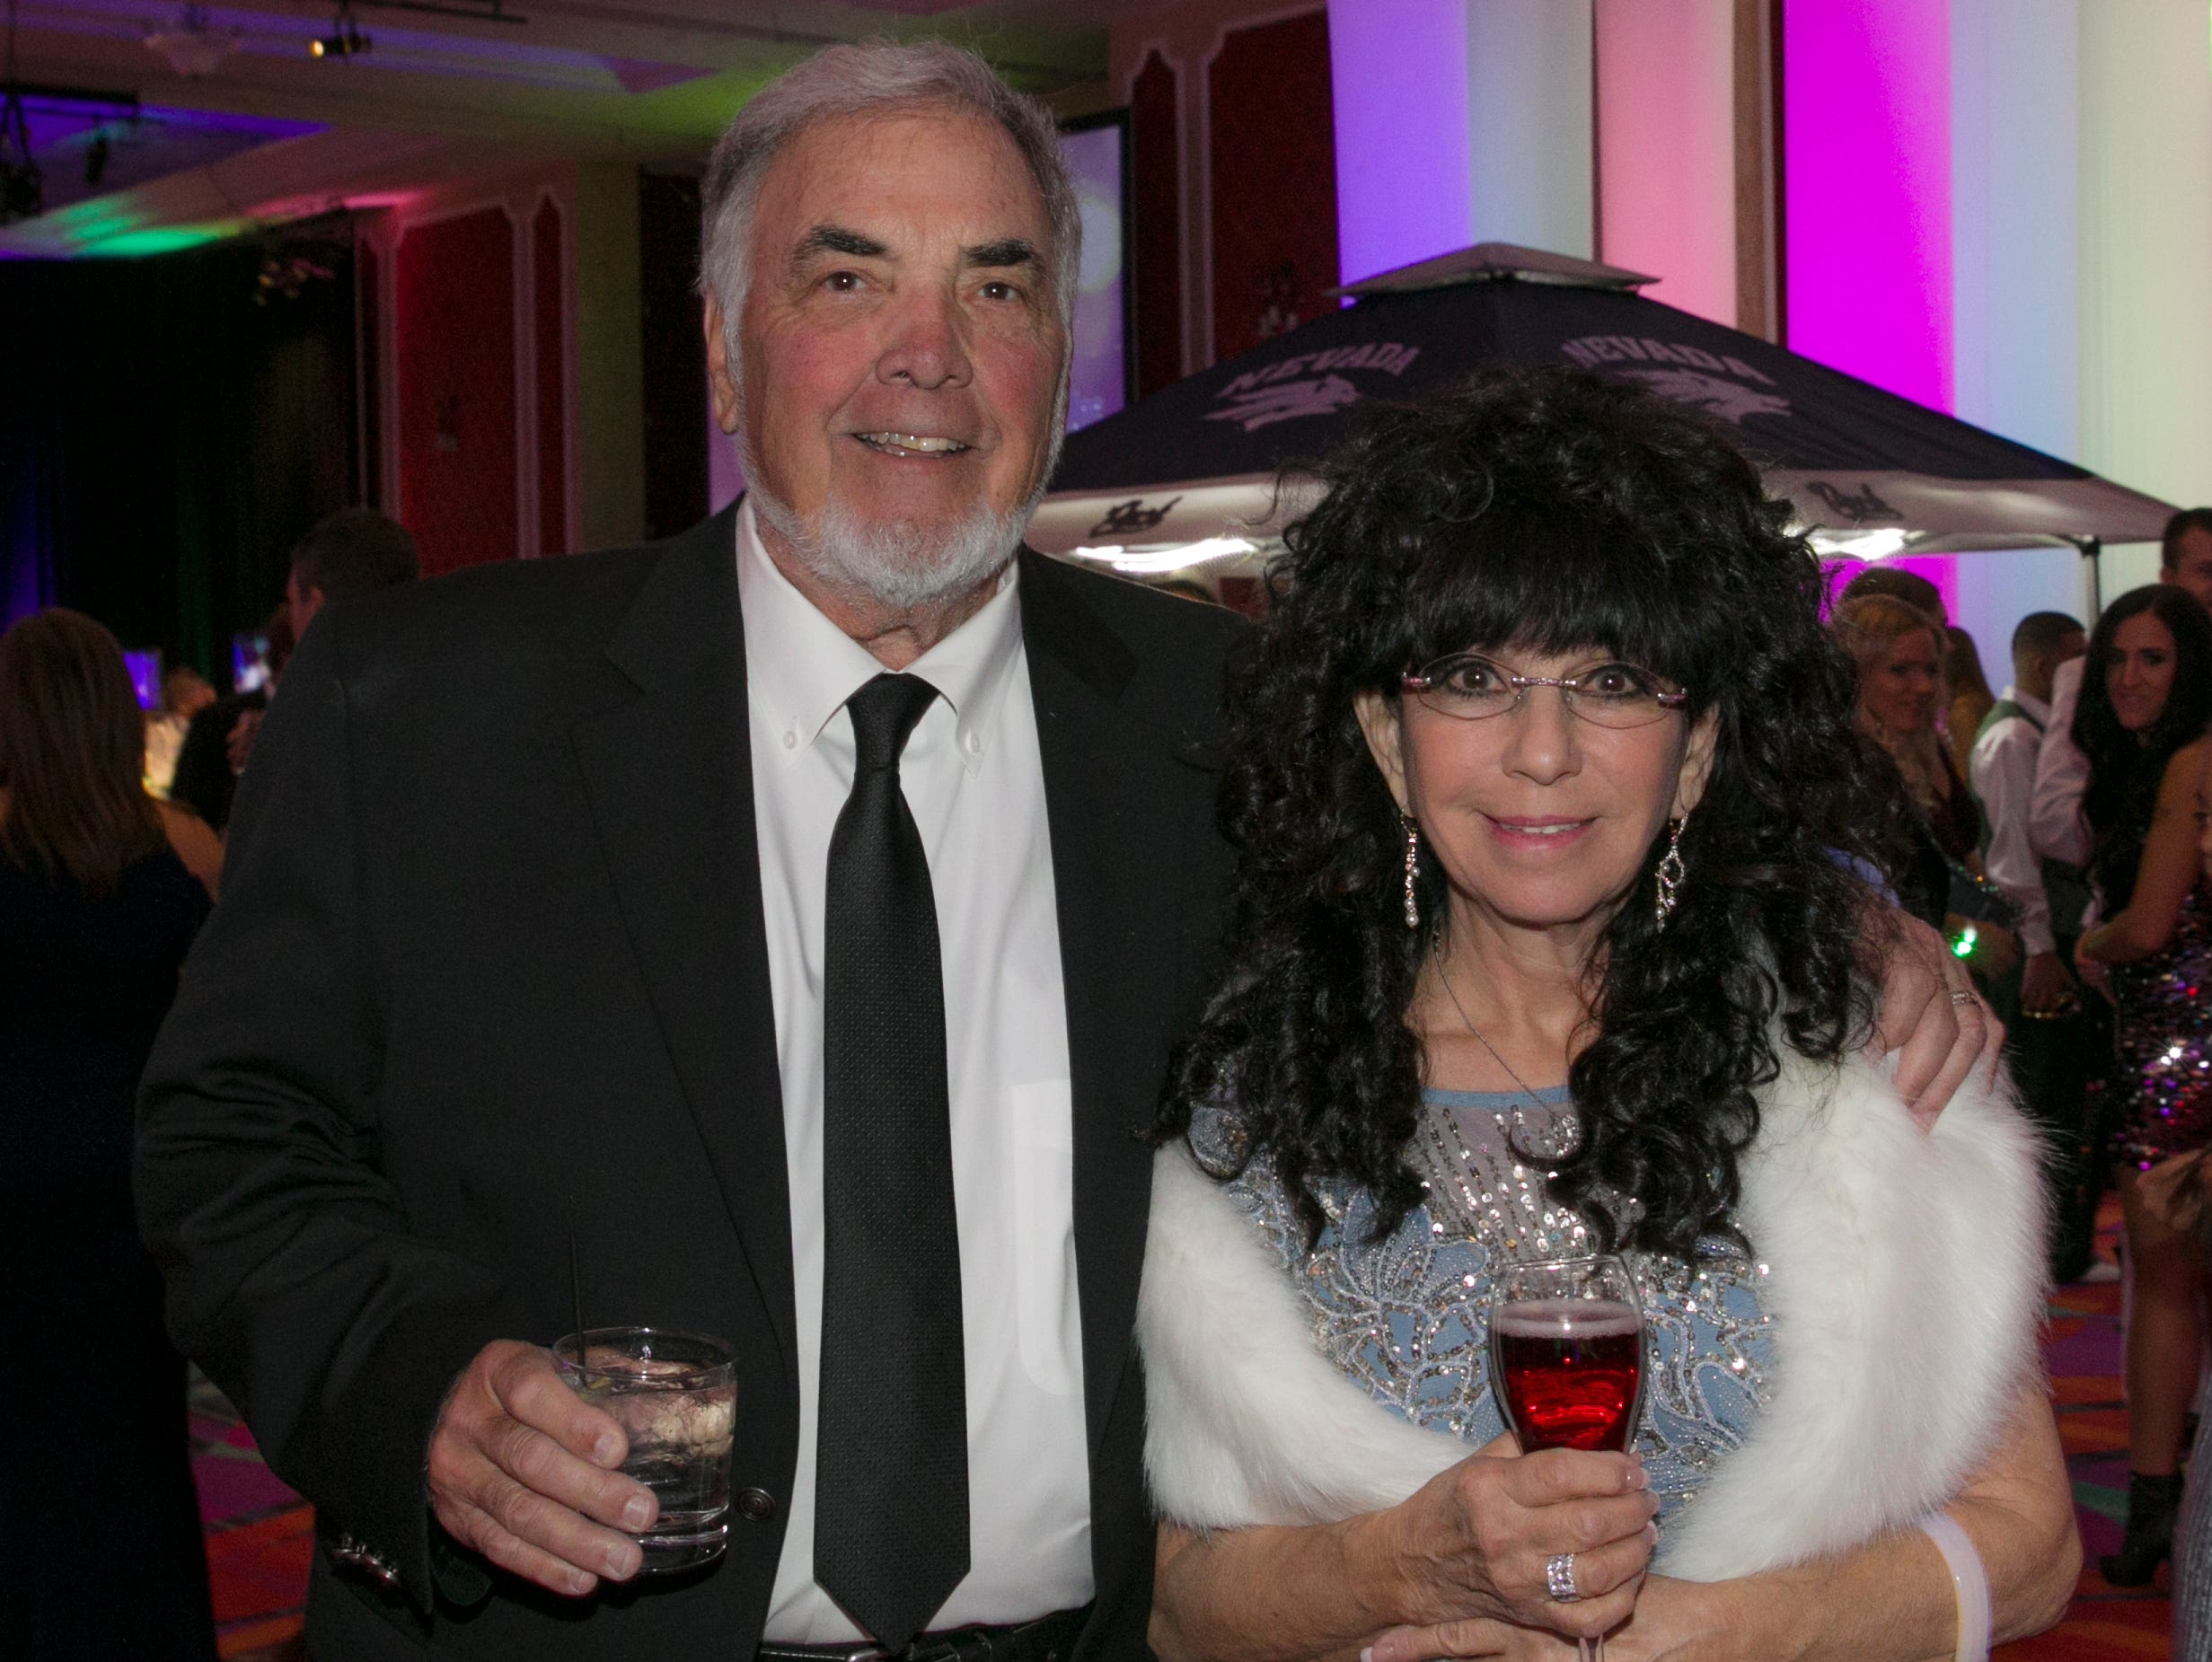 Dick and Mary Campagni during the 10th Annual Blue Tie Ball at the Peppermill Resort Spa Casino in Reno, NV on Friday night, Feb. 1, 2019.